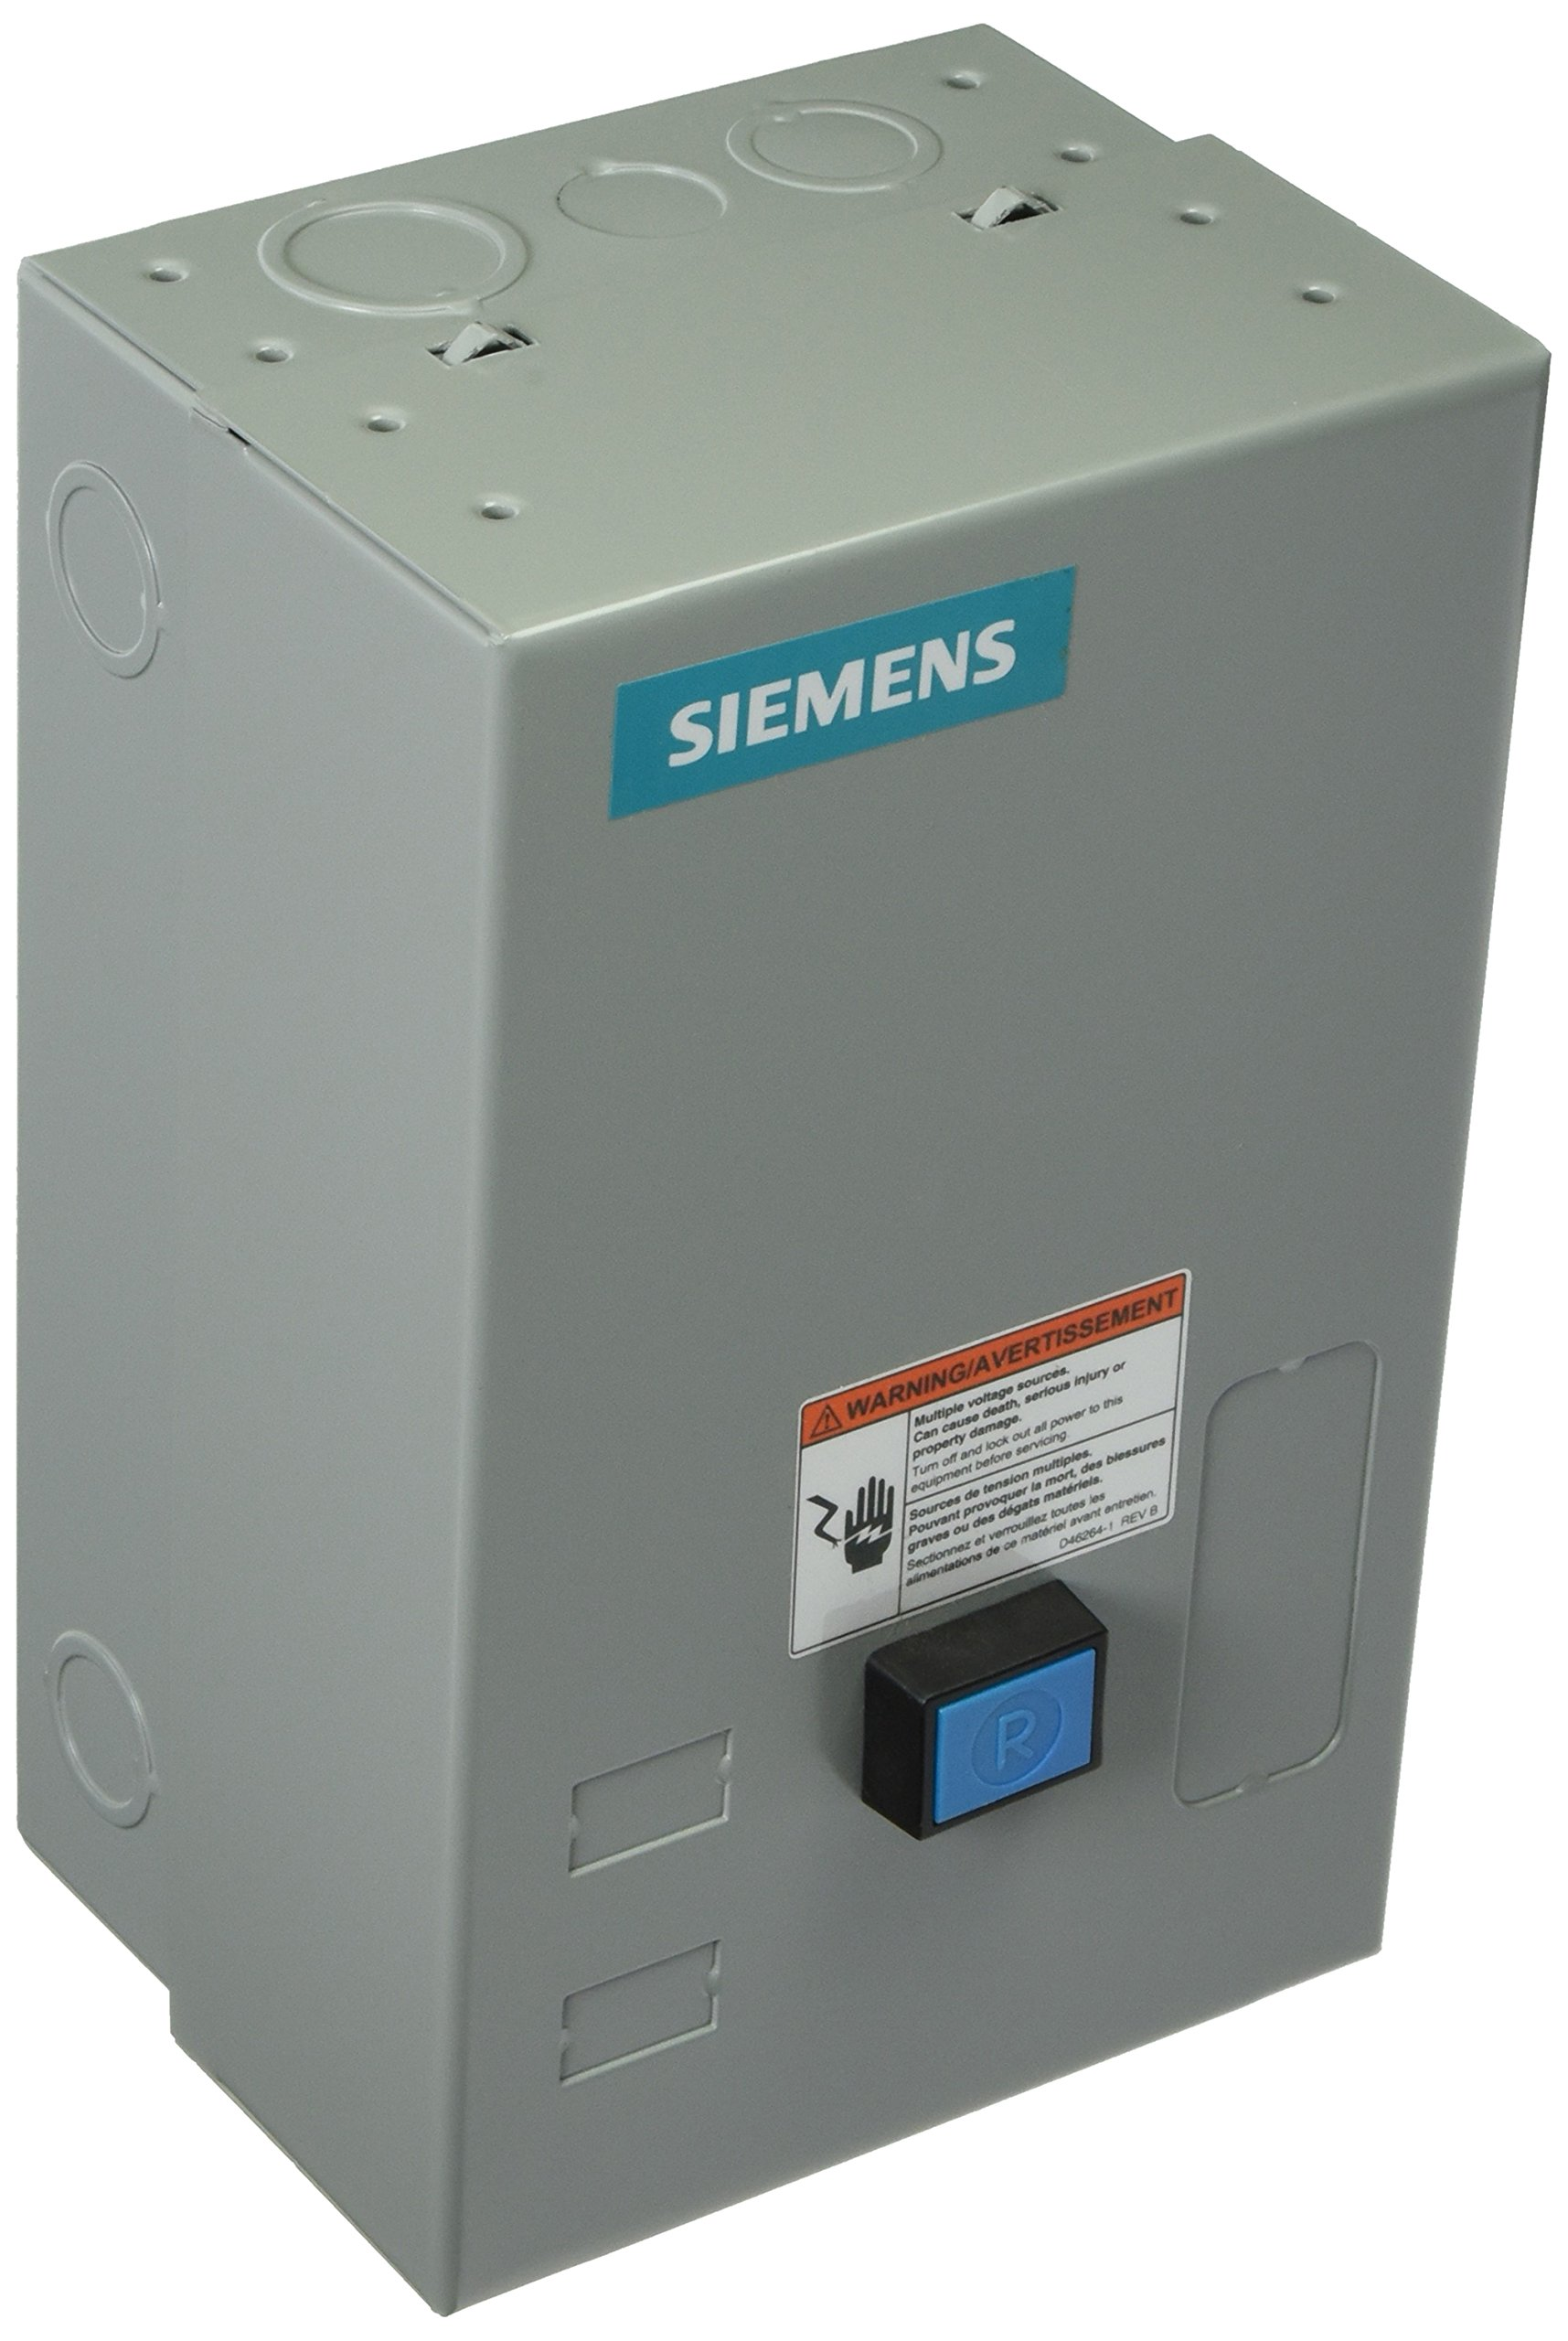 Siemens 14BUC32BA Heavy Duty Motor Starter, Solid State Overload, Auto/Manual Reset, Open Type, NEMA 1 General Purpose Enclosure, 3 Phase, 3 Pole, 00 NEMA Size, 3-12A Amp Range, A1 Frame Size, 110-120/220-240 at 60Hz Coil Voltage